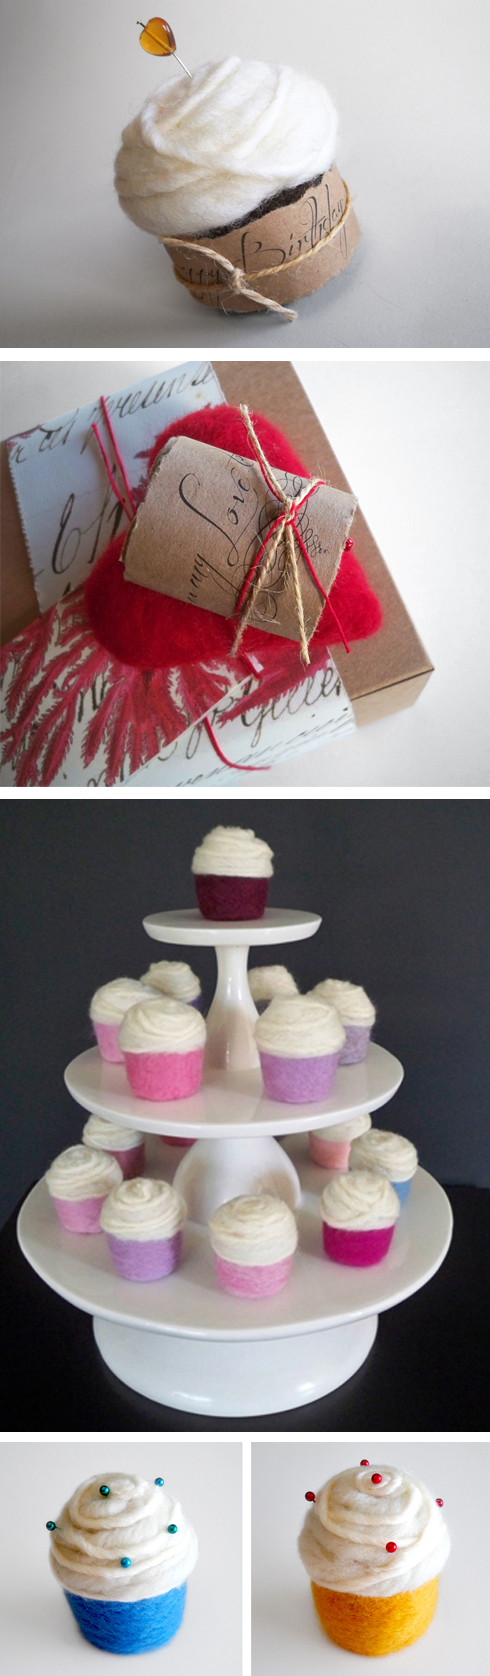 felted cupcakes by tracy hetzel